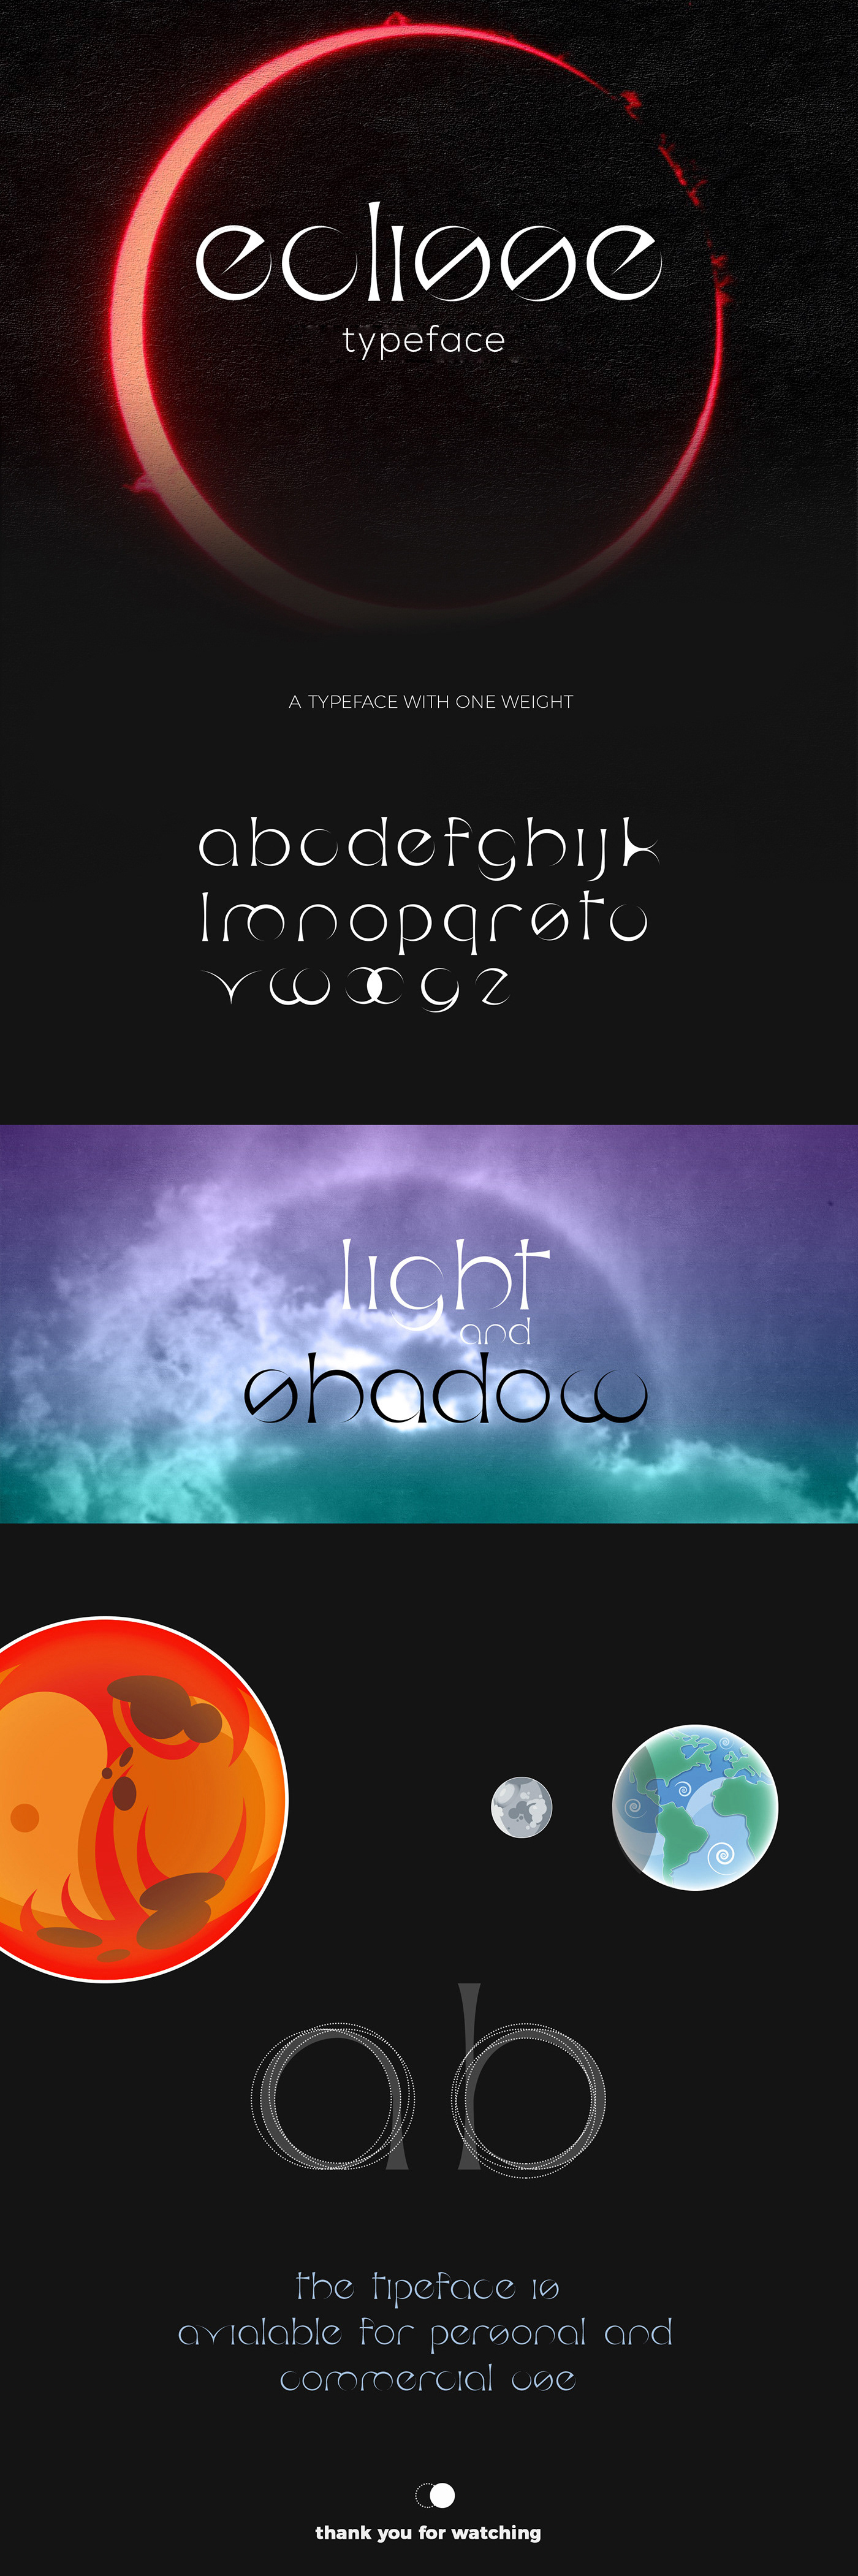 Eclisse Typeface - Anteprima Font - Preview